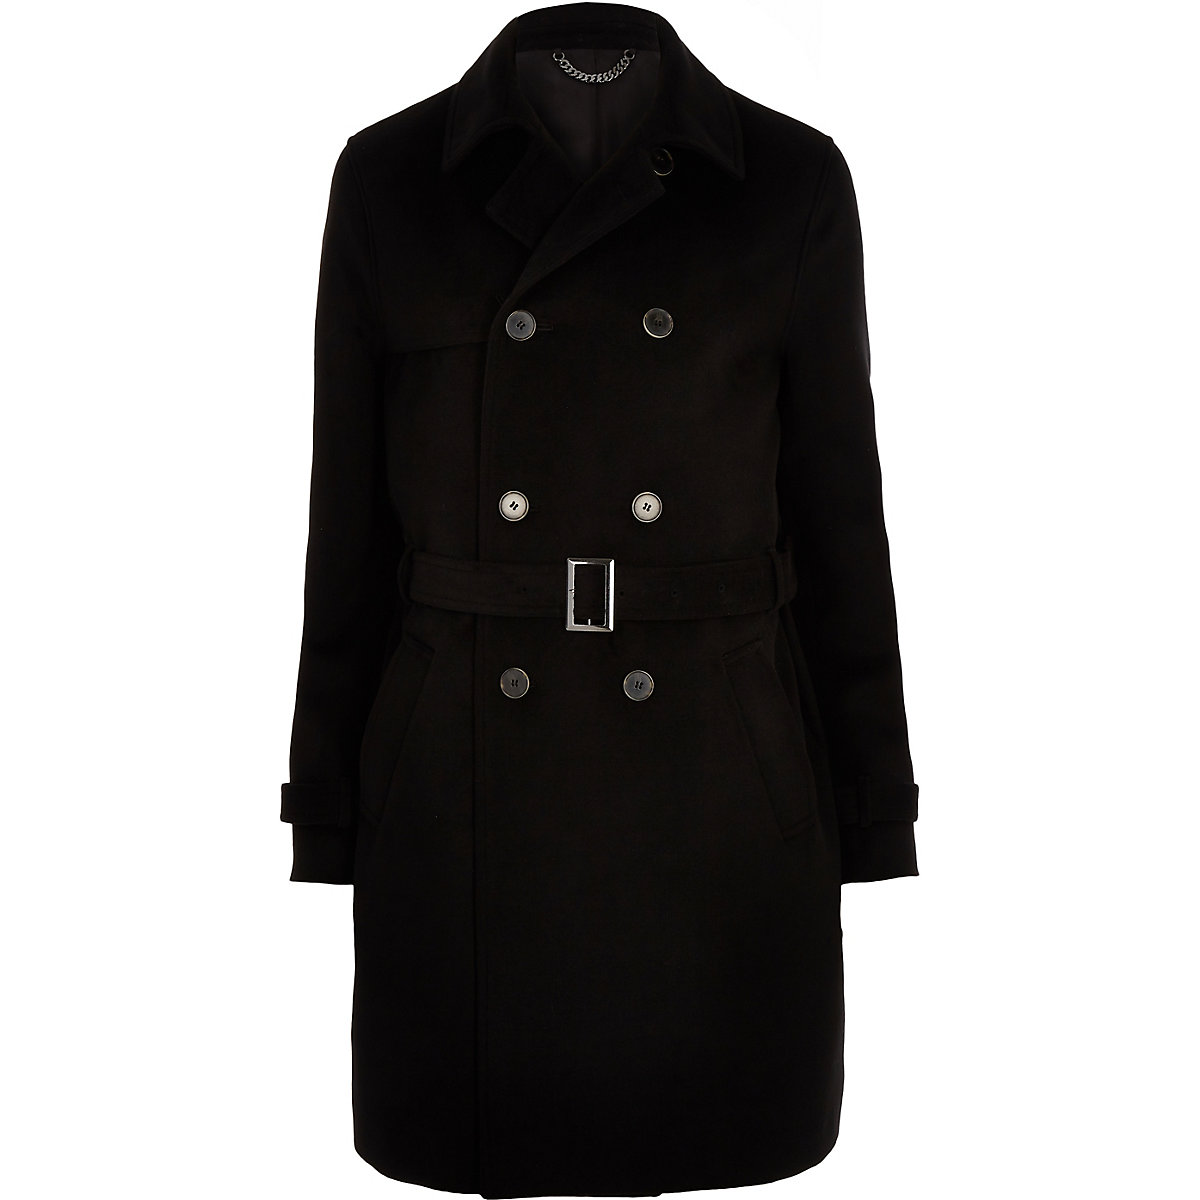 Belted double breasted overcoat